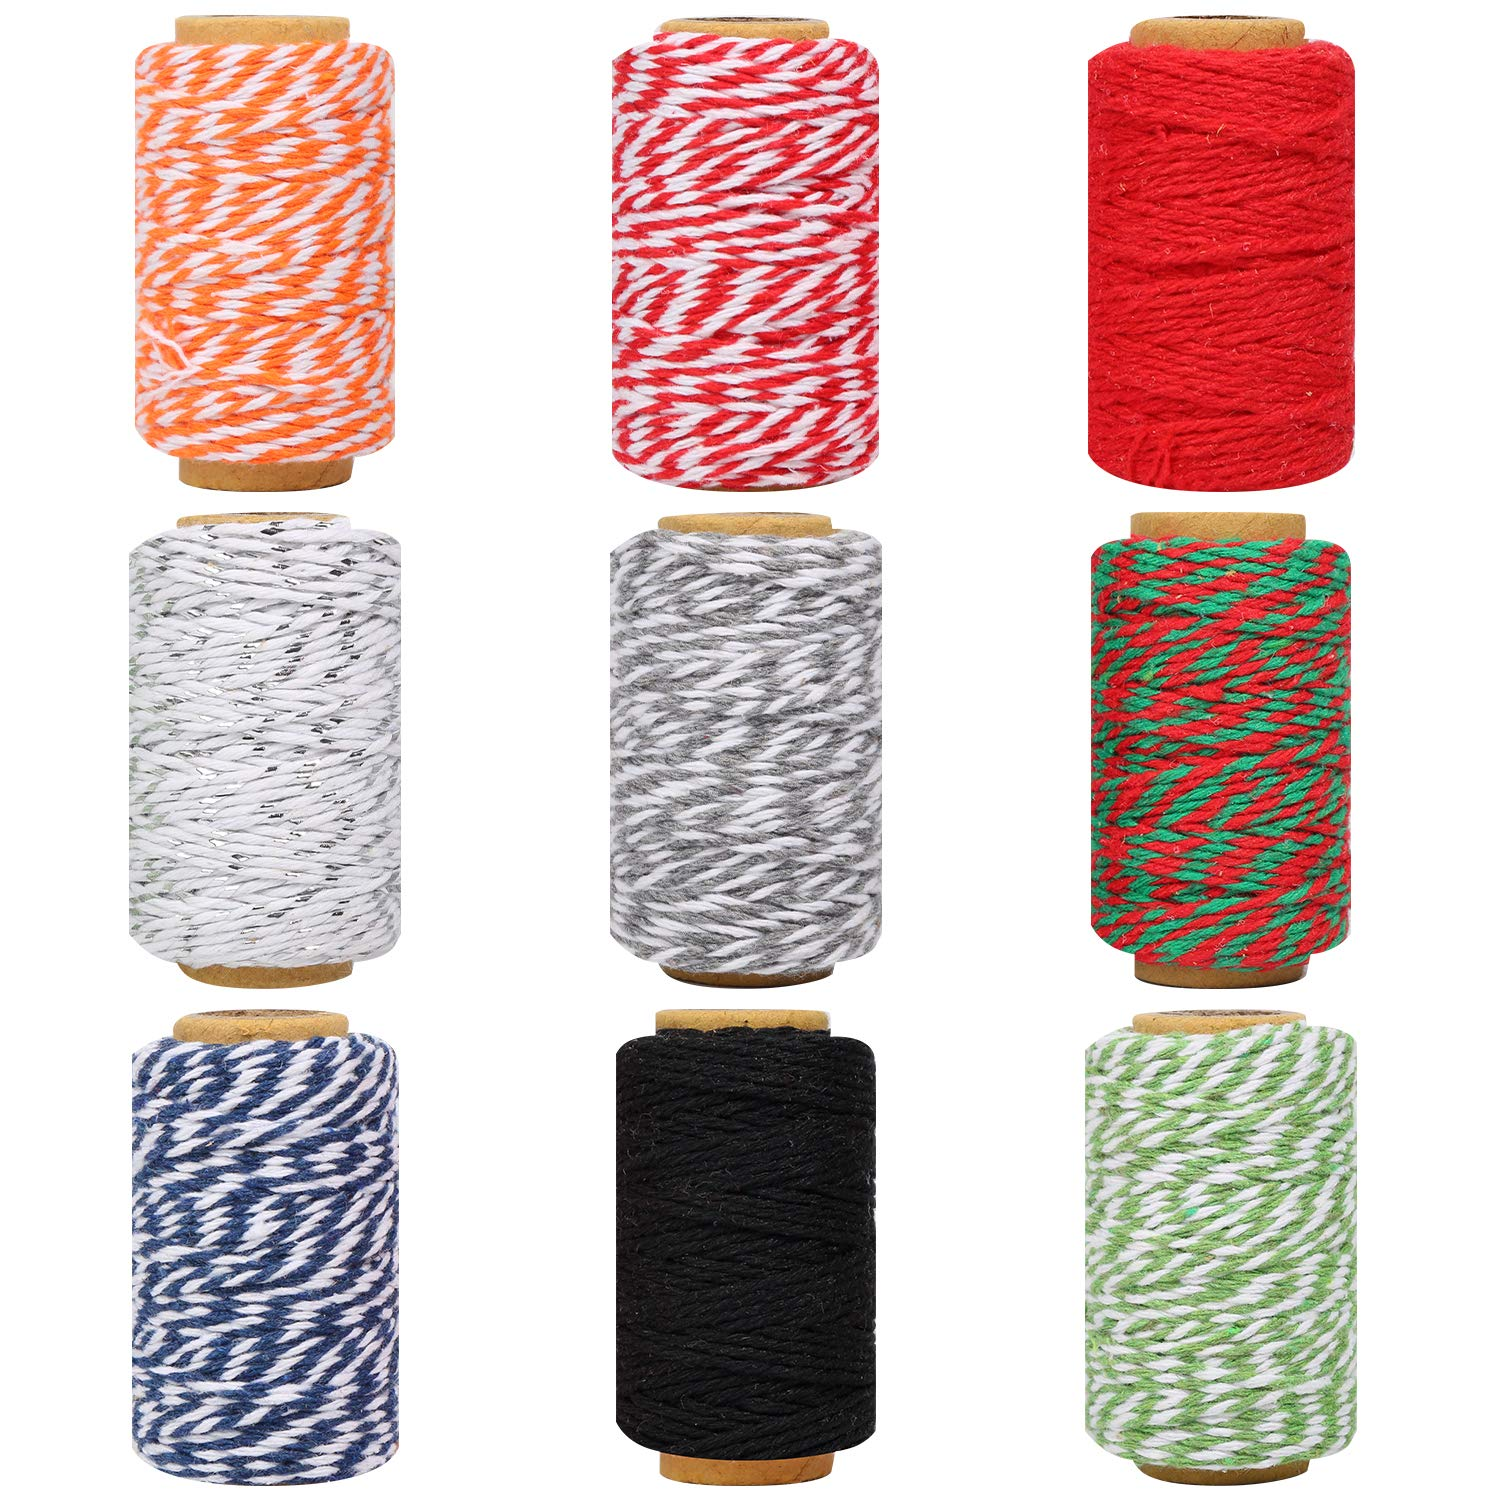 Maosifang 9 Rolls Christmas Twine Cotton 2 mm String Rope Cord for Gift Wrapping Arts Crafts Party Decorations Gardening Applications,9 Colors by Maosifang